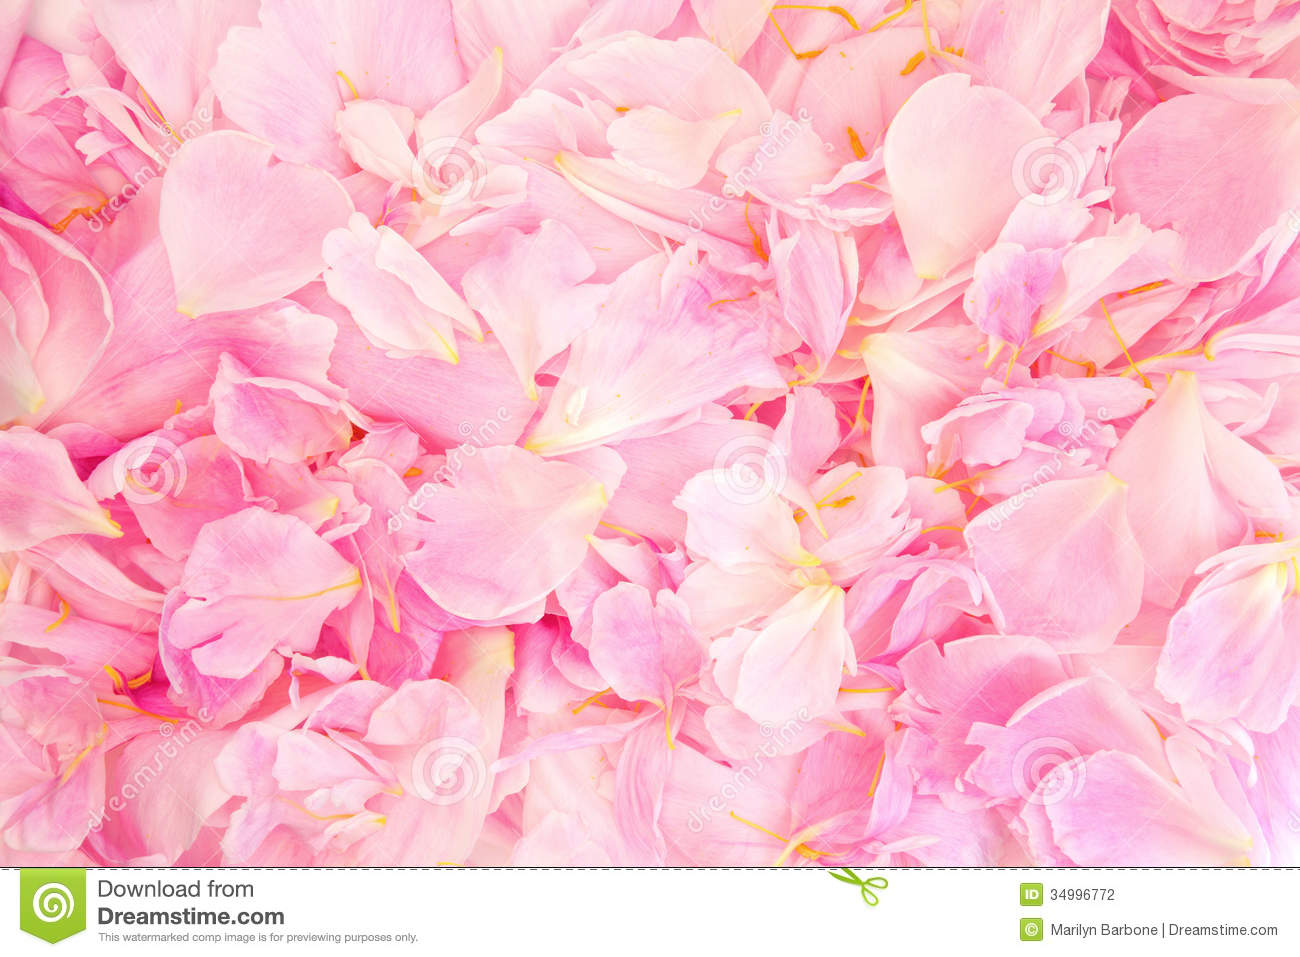 Peonies Wallpaper Iphone 6 Peony Petal Beauty Stock Photo Image Of Herbal Flora